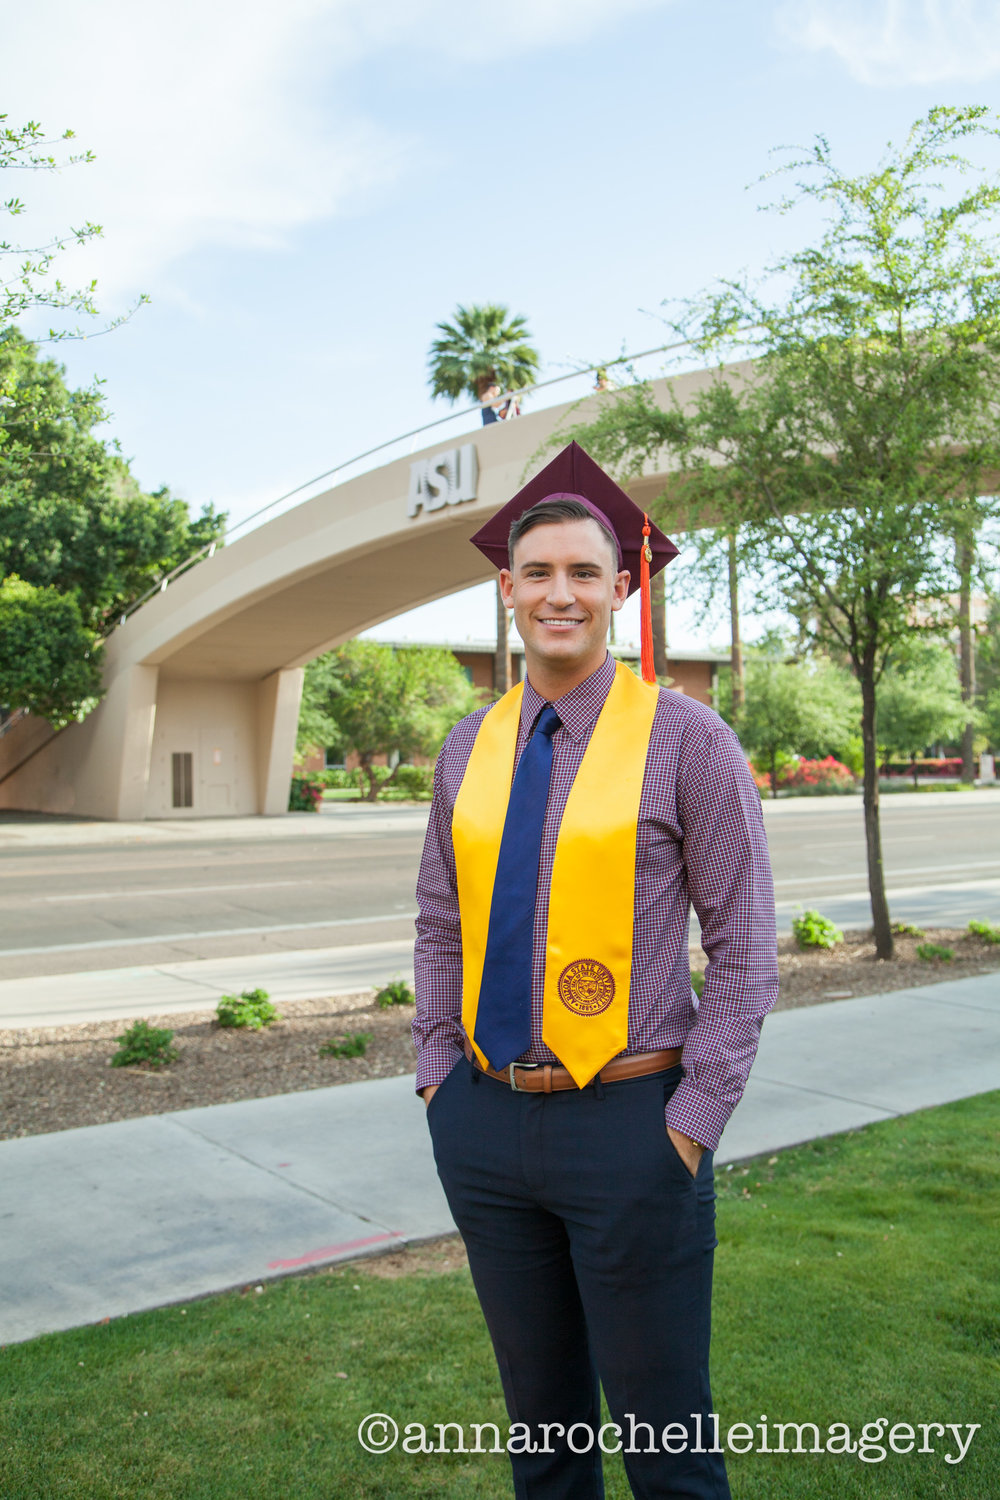 palm-walk-asu-tempe-bridge-mens-senior-grad.jpg